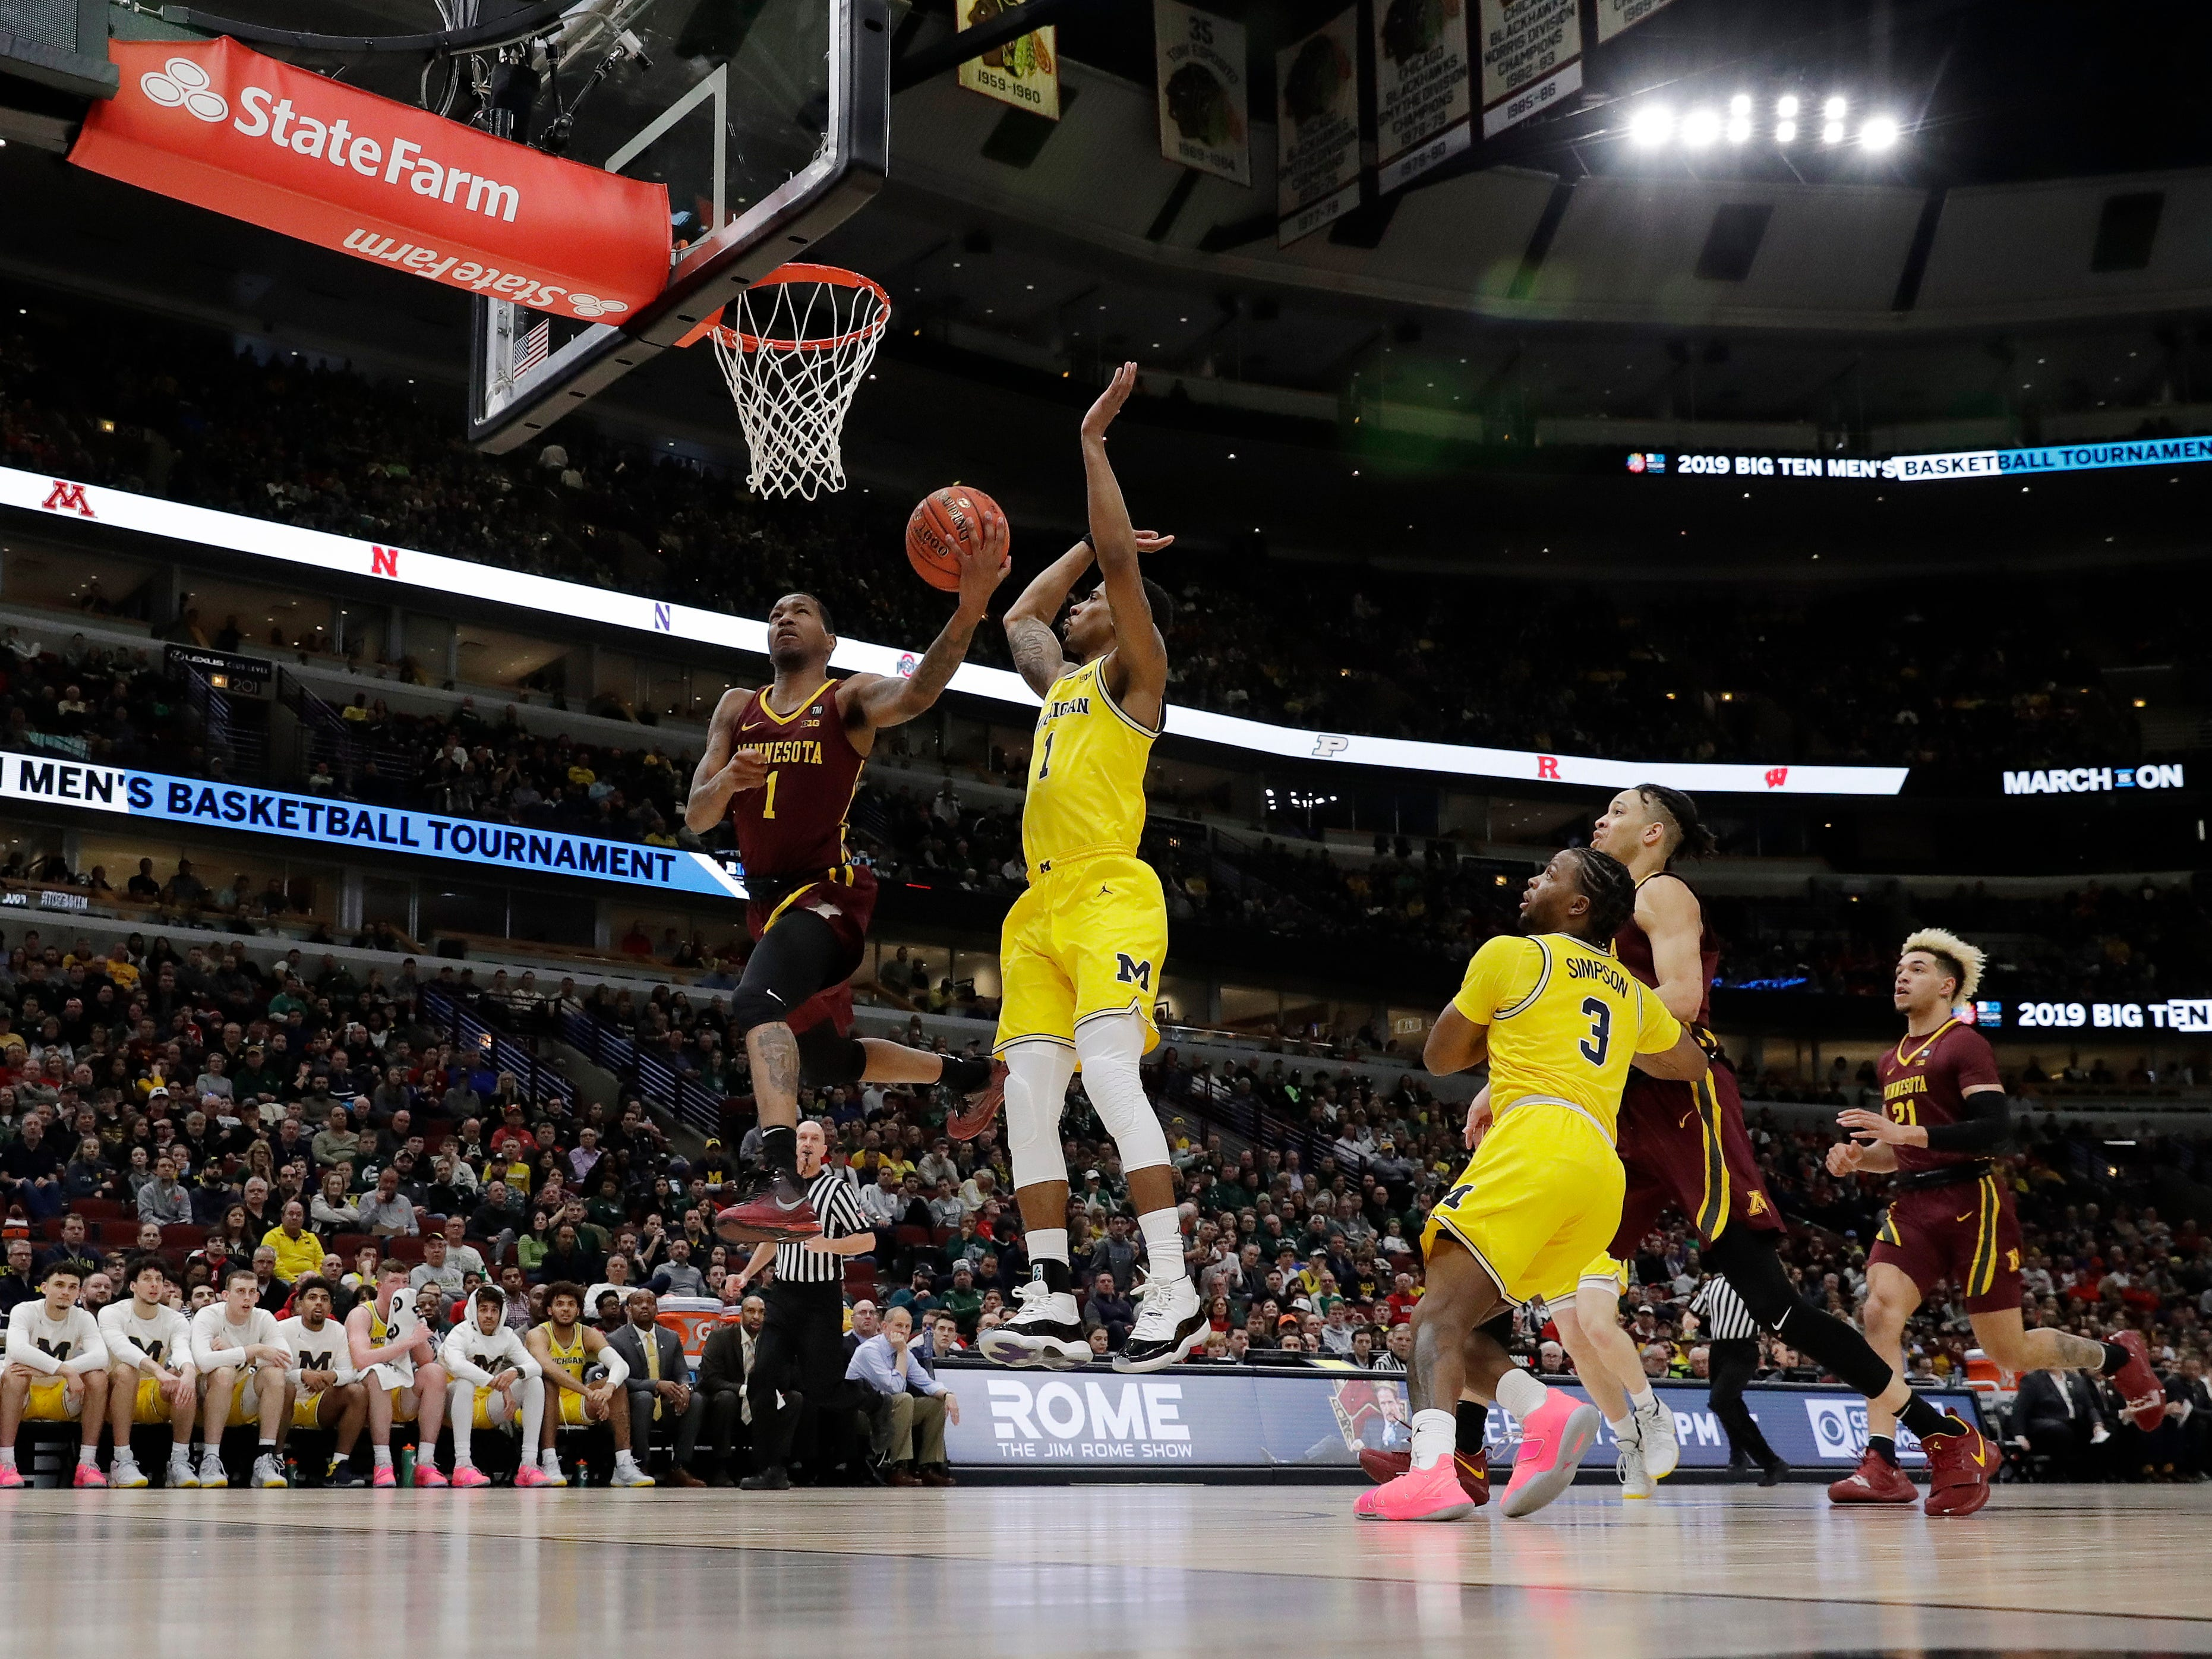 Minnesota's Dupree McBrayer, left, goes up for a basket against Michigan's Charles Matthews during the first half.